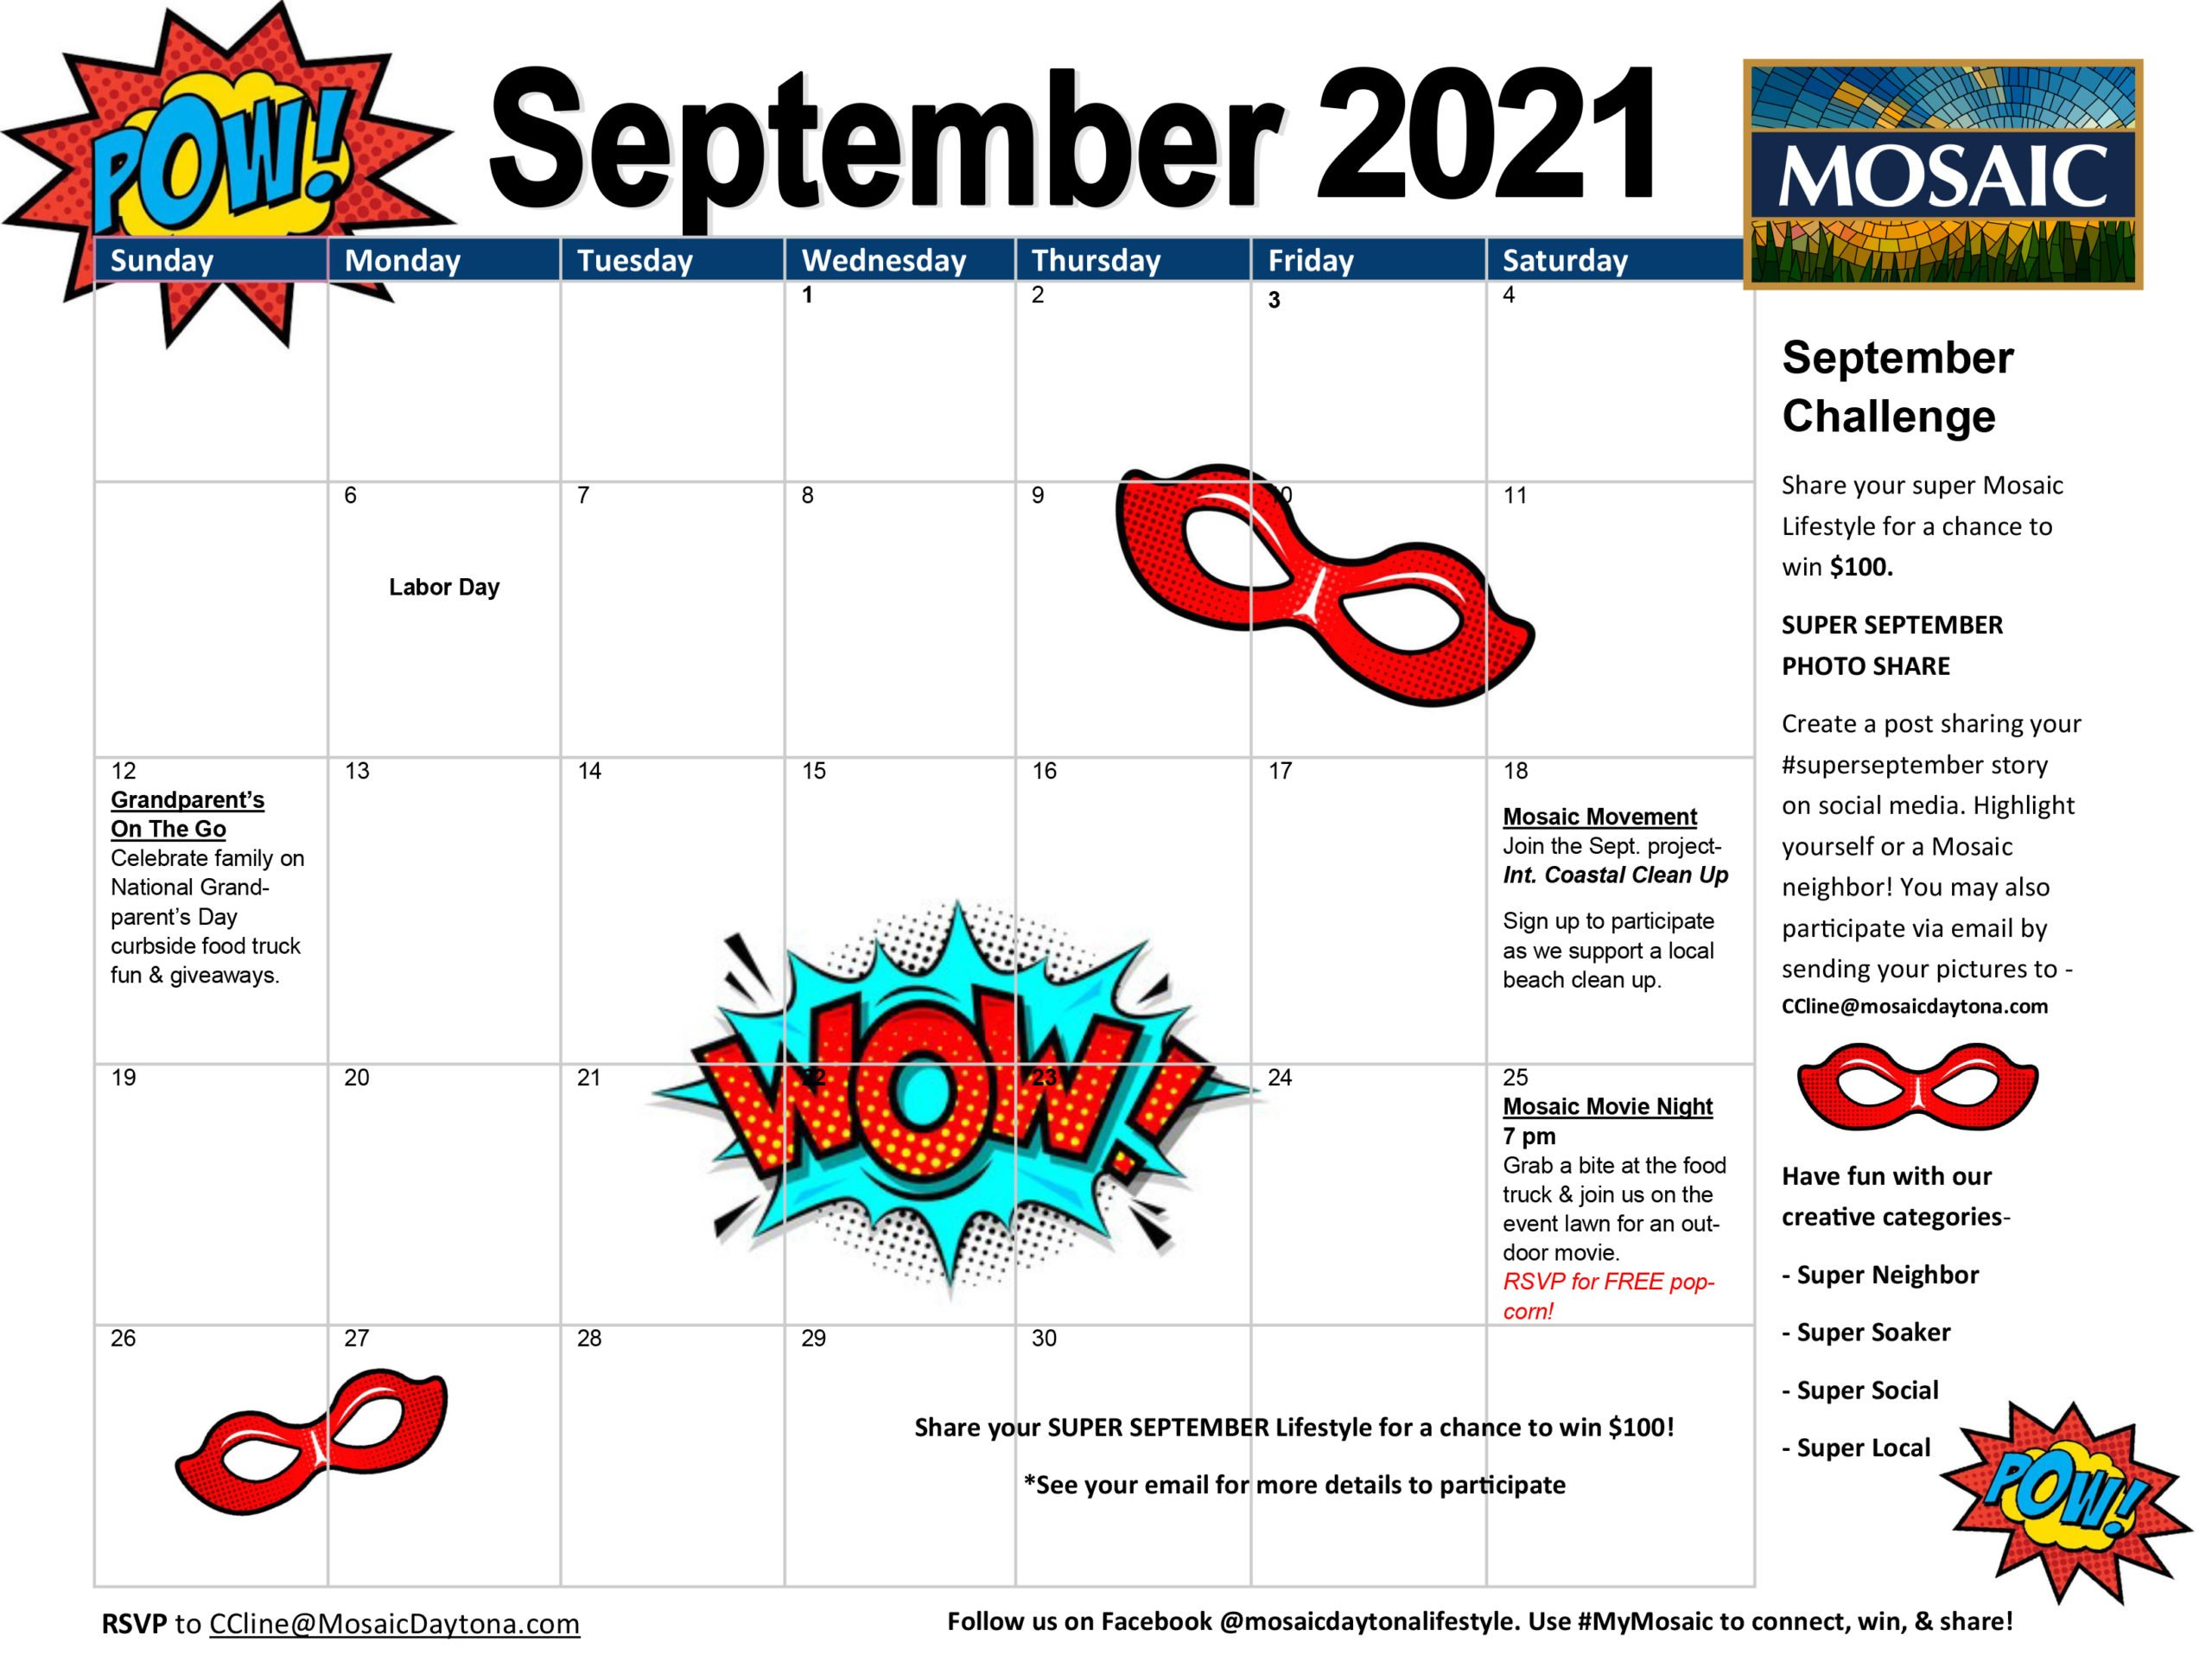 Events at Mosaic - Sept 21 scaled